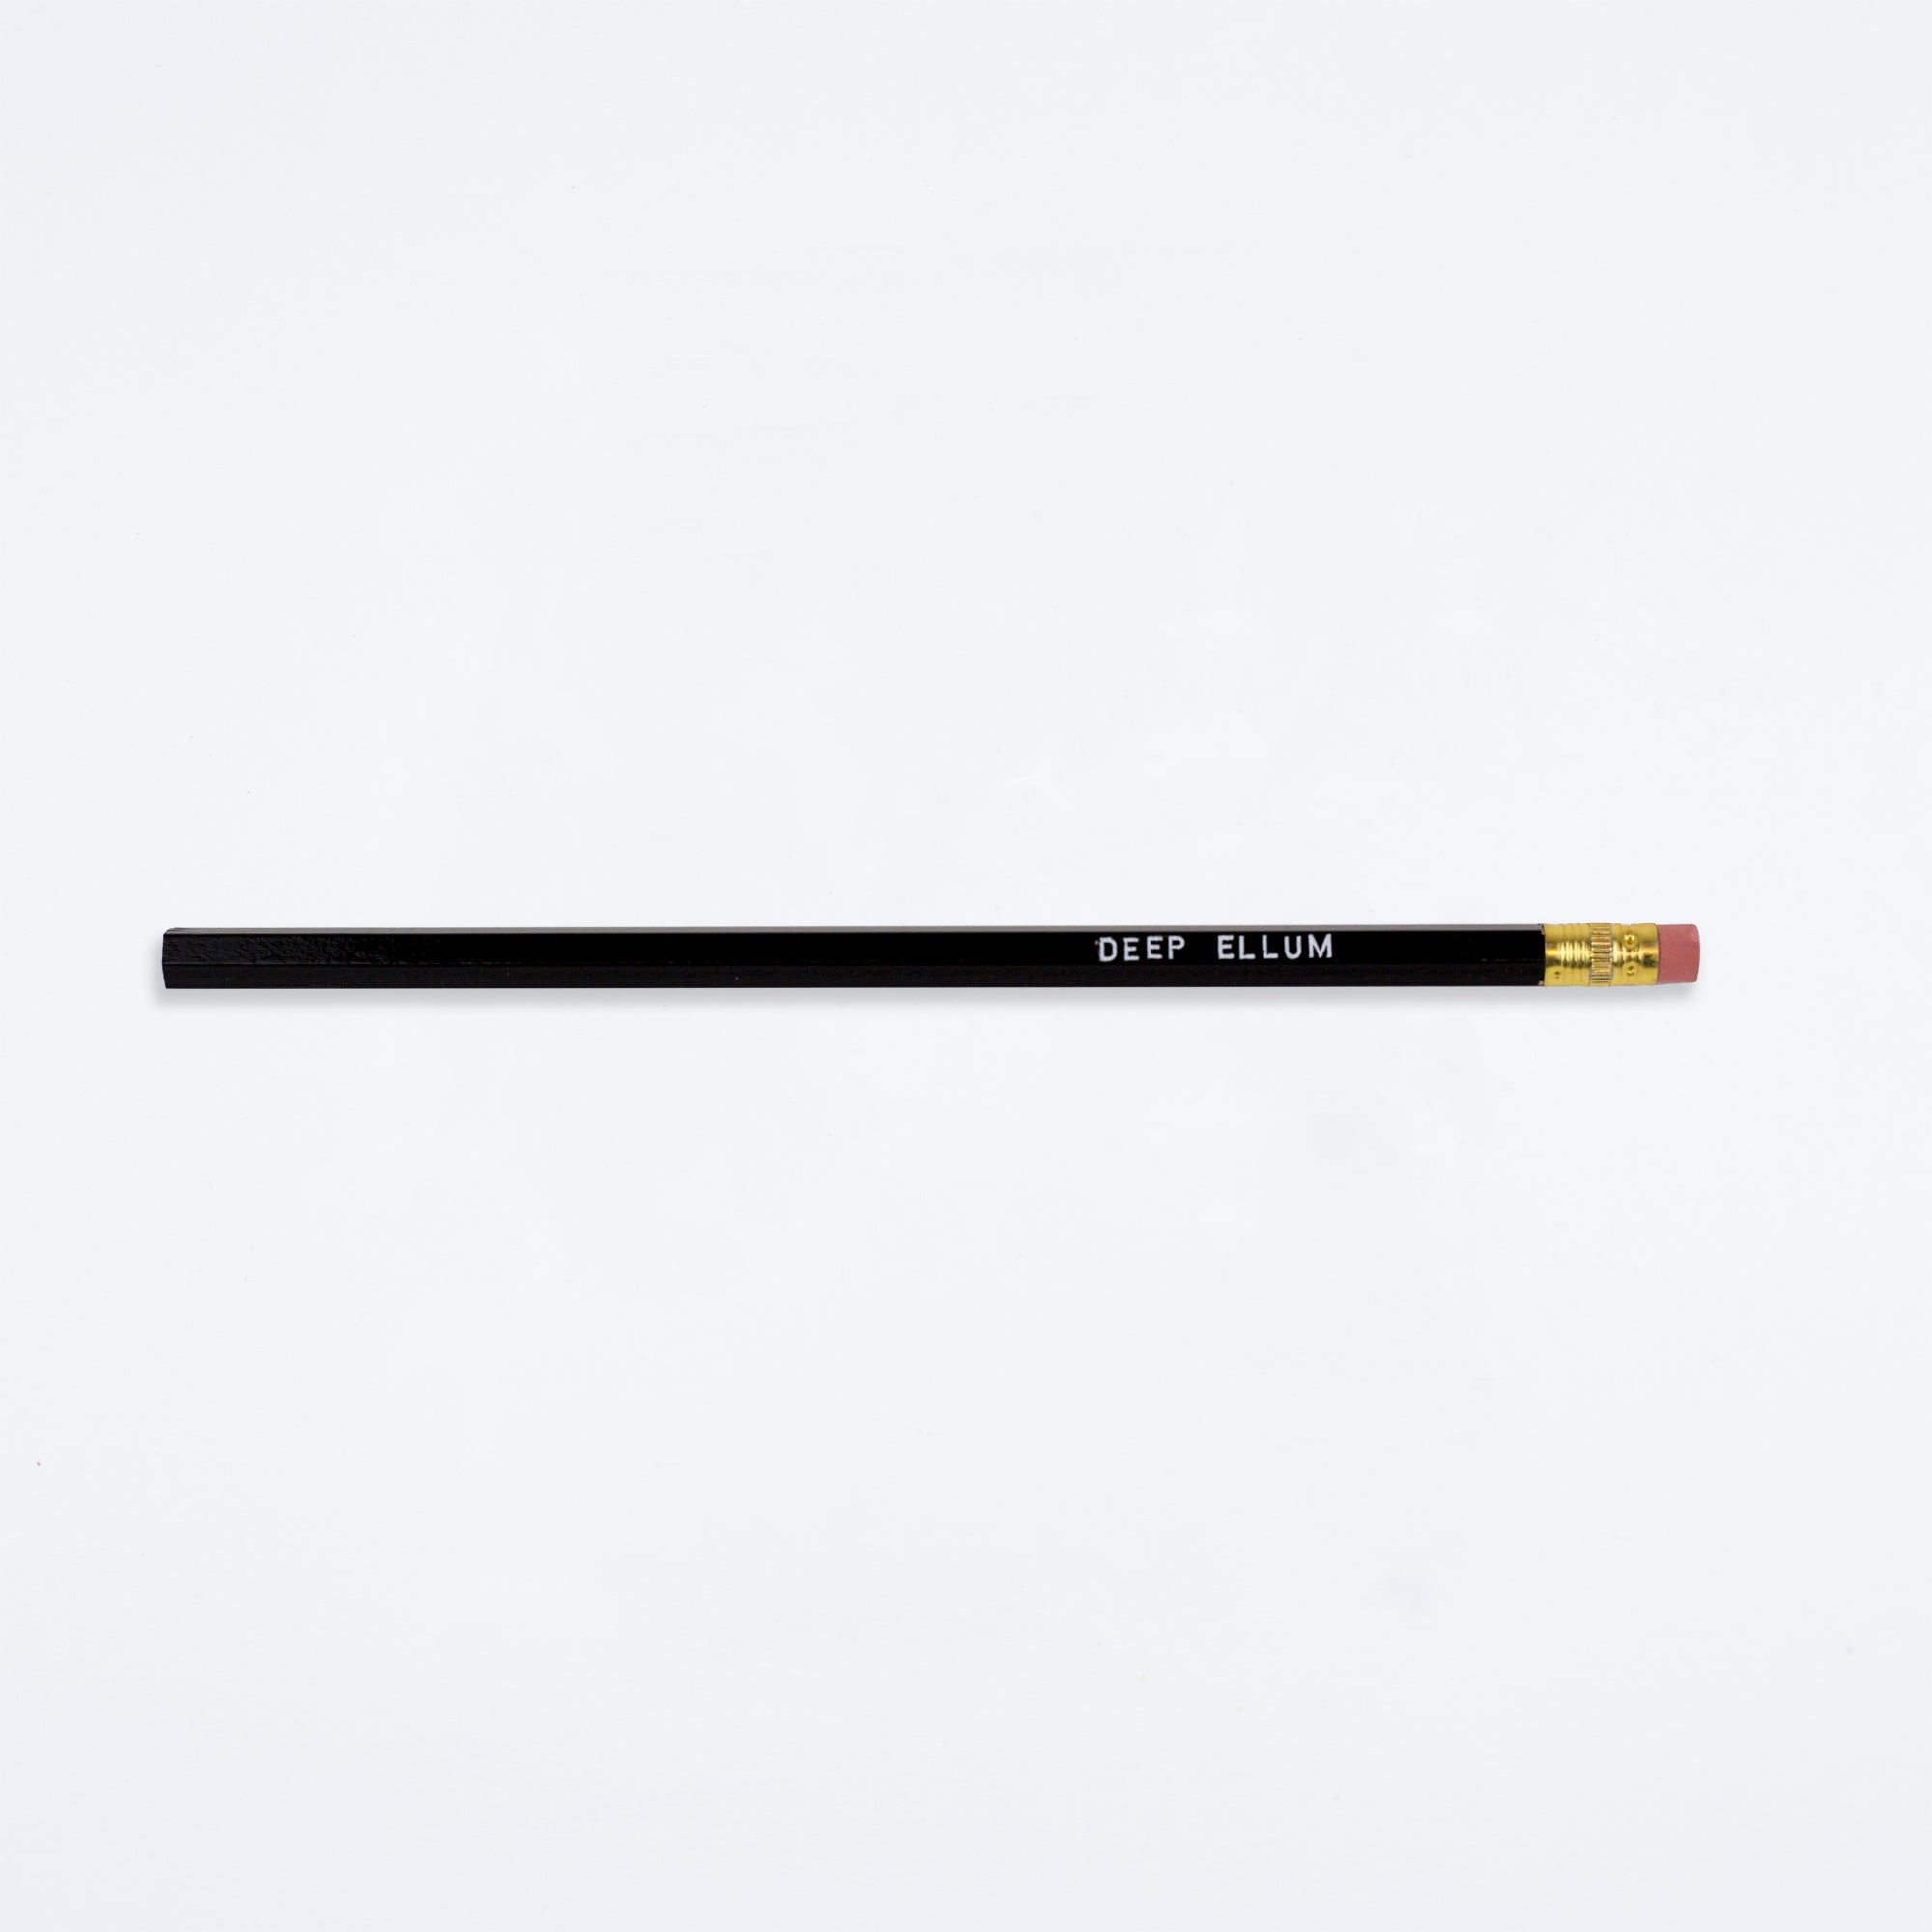 Deep Ellum Pencil